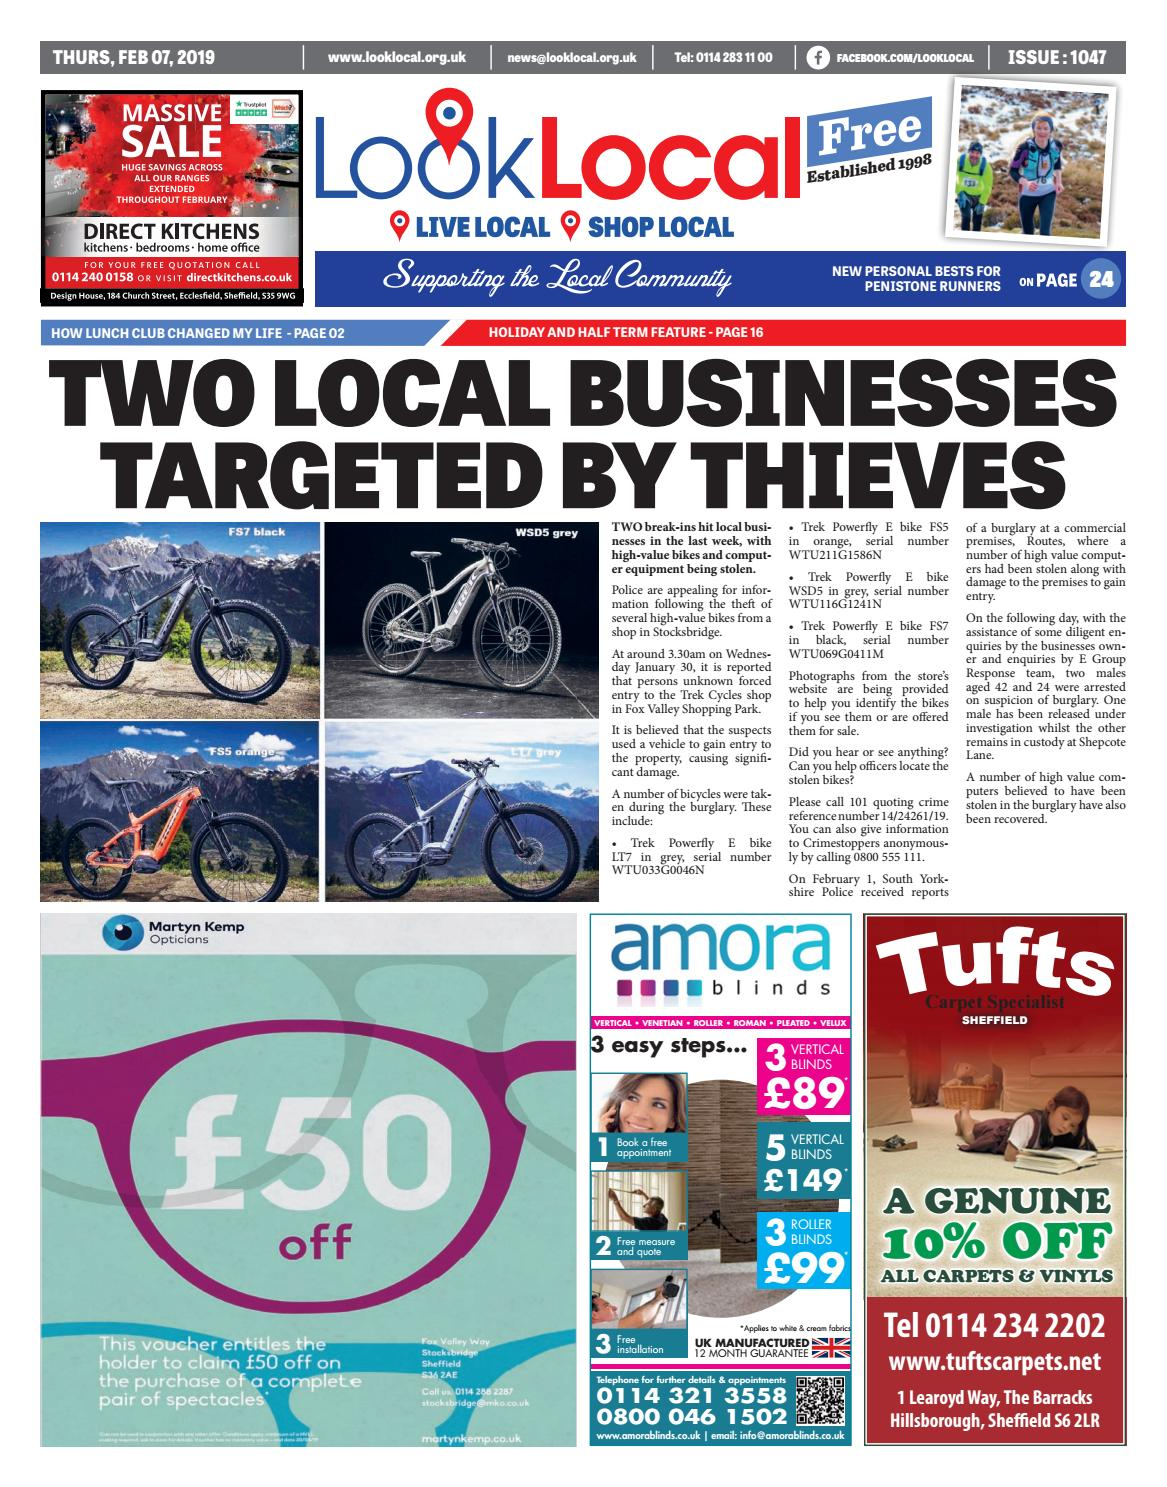 75c2661255 Issue 1047 Thursday 7 February 2019 by Look Local Newspaper - issuu